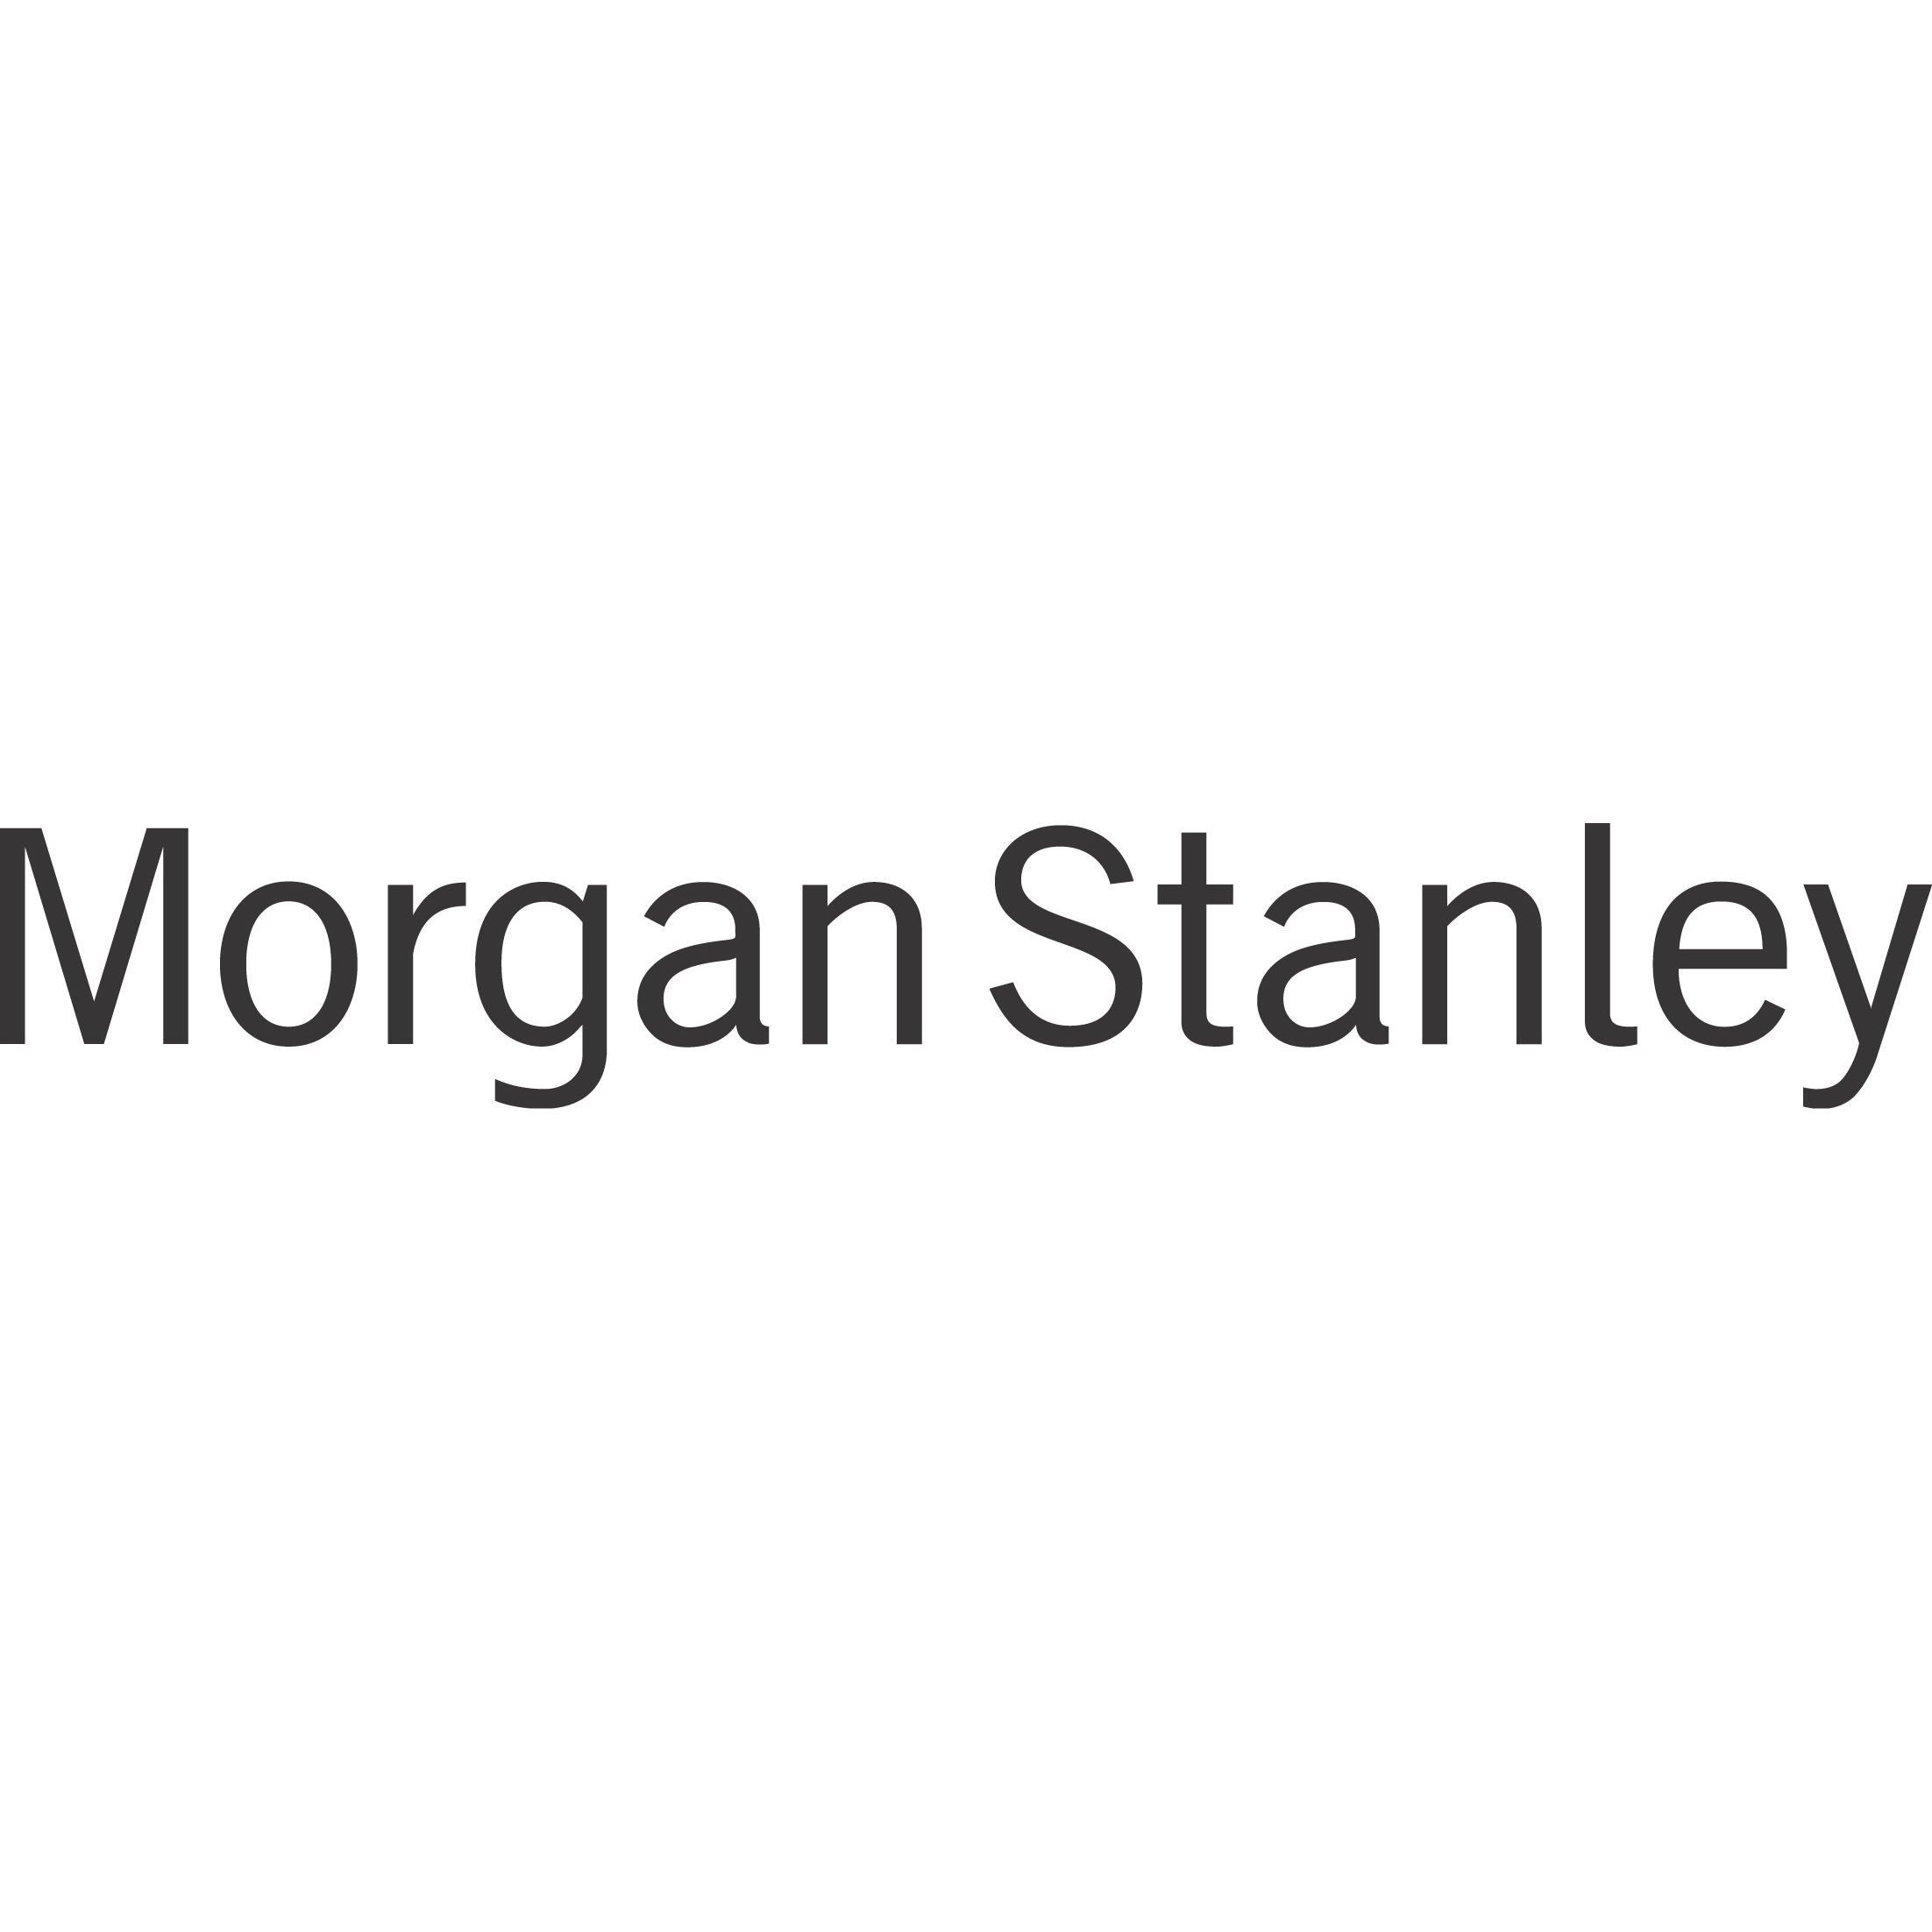 Carra D. Sprague - Morgan Stanley